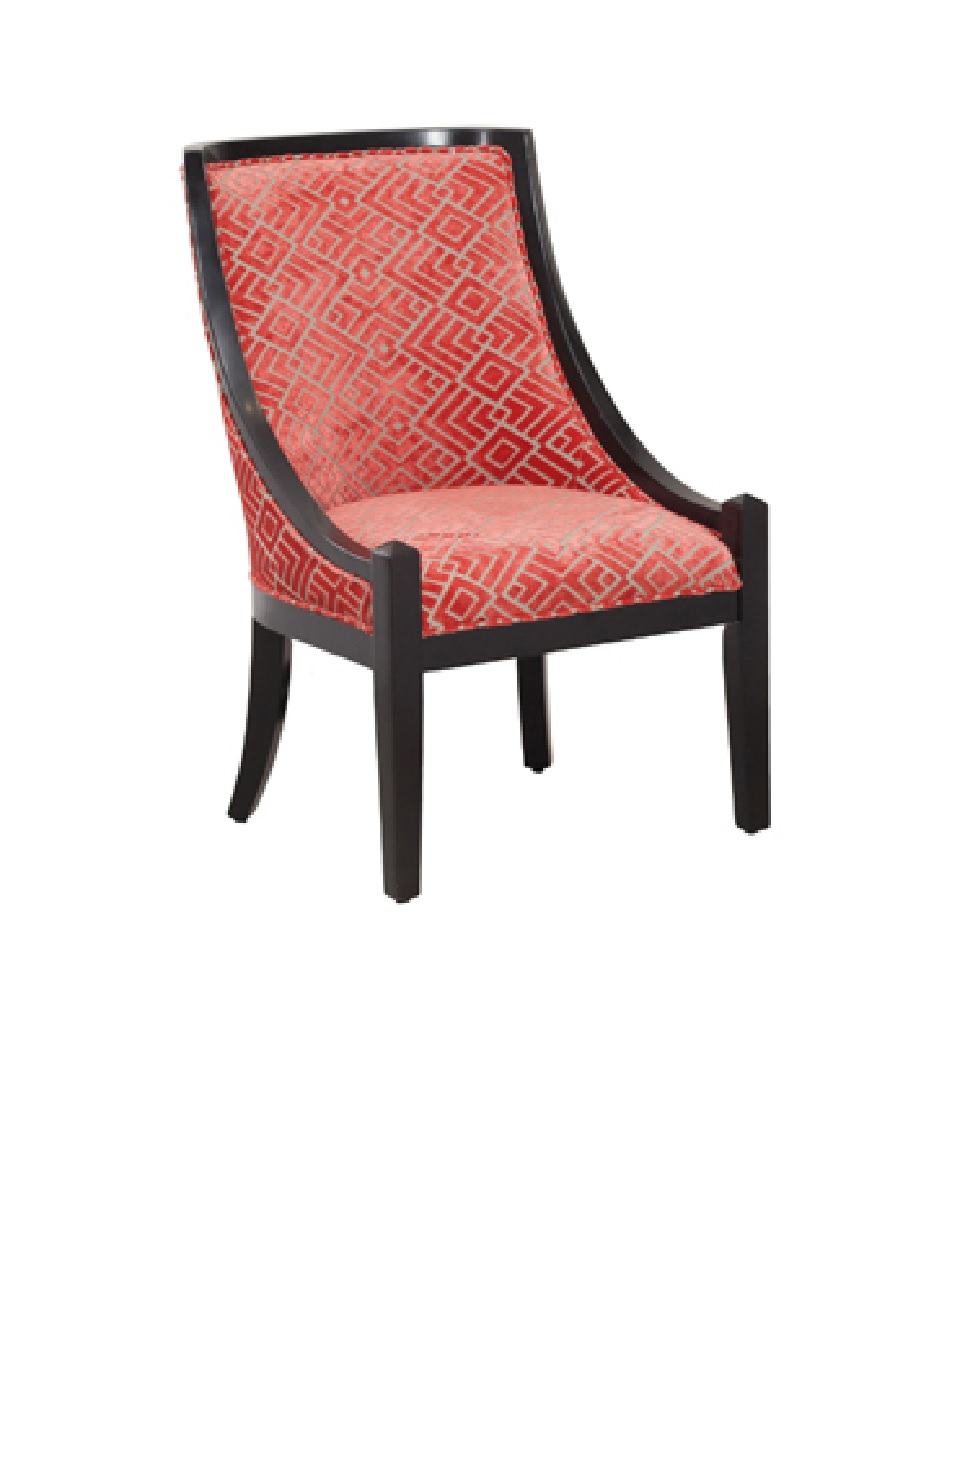 Sears Accent Chairs L Powell Aria Accent Chair Red Products Accent Chairs Chair